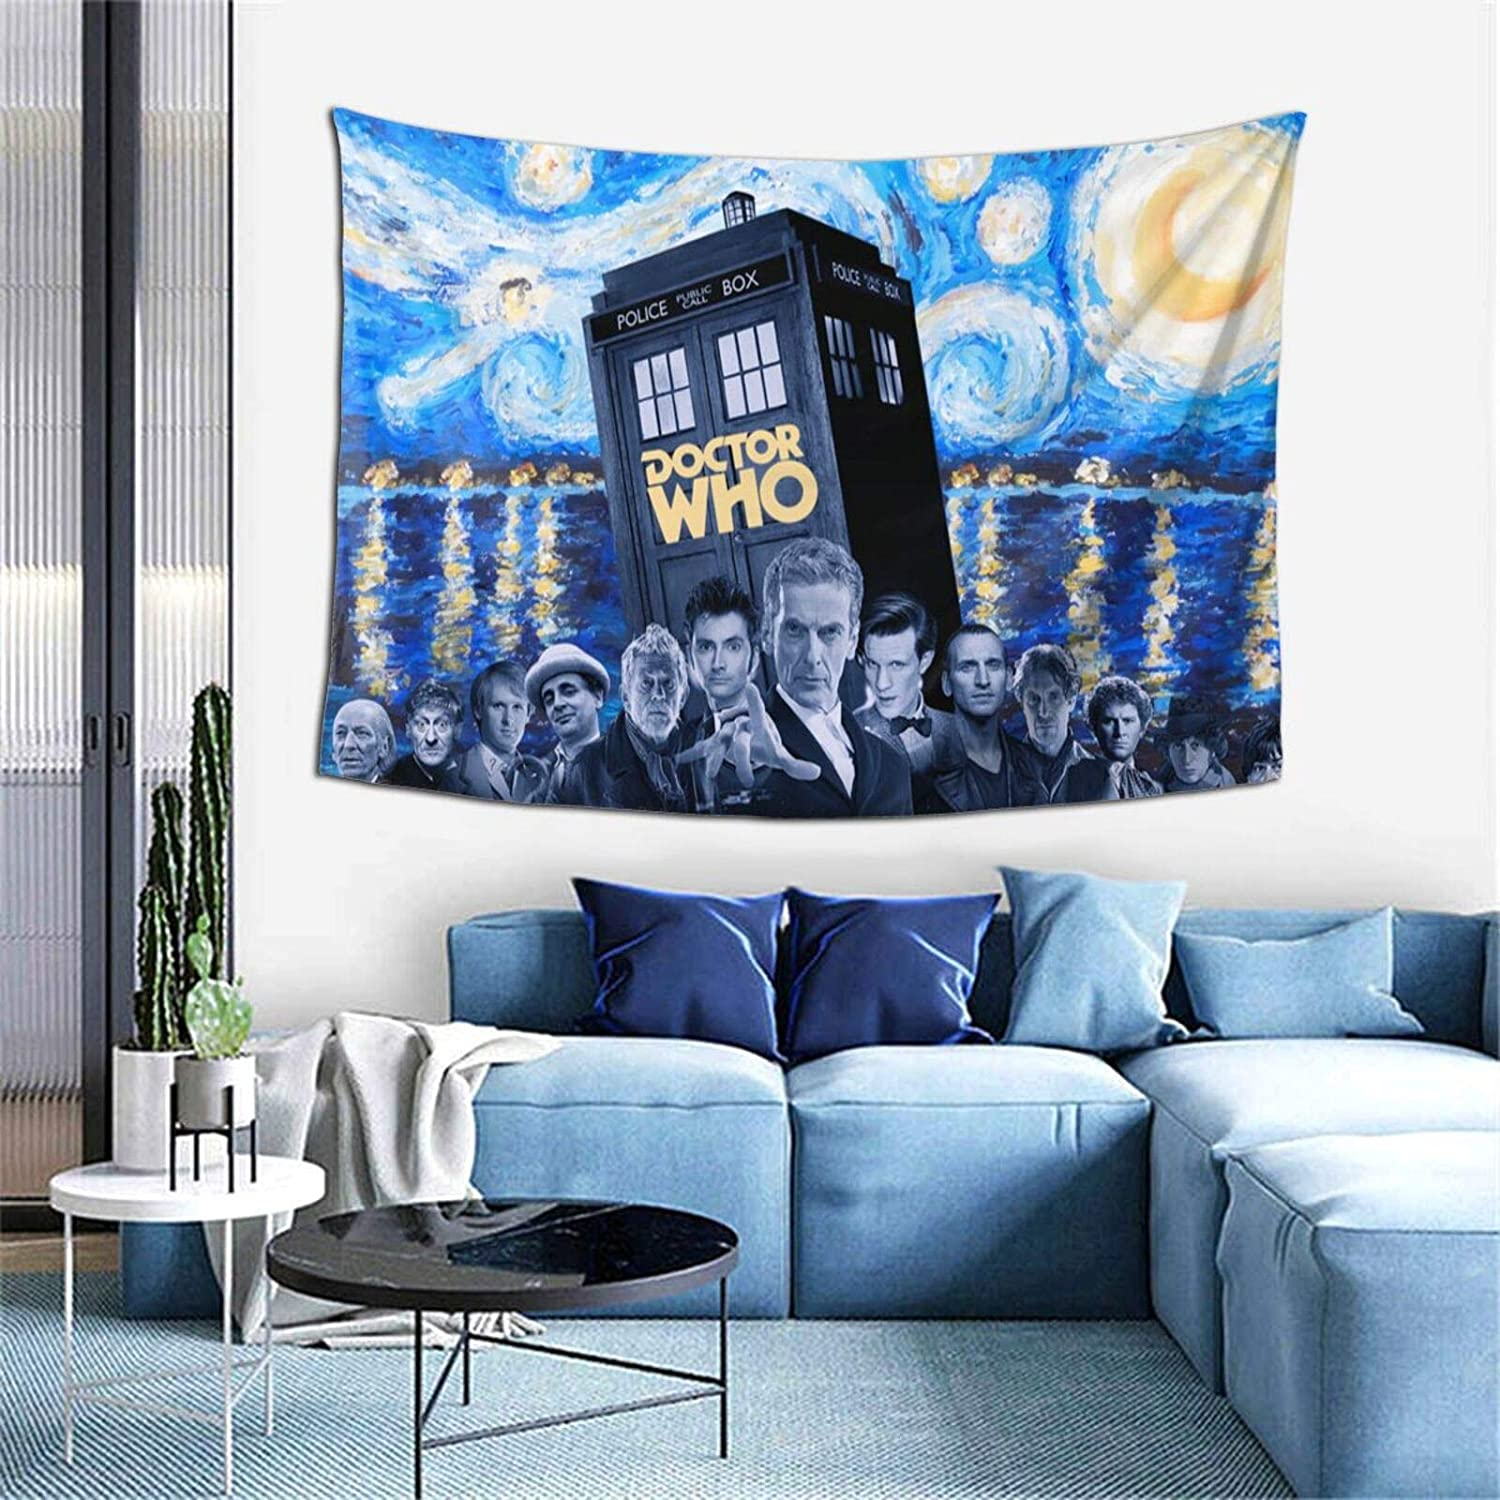 Bestrgi Tapestry Hanging Wall Banner D-o-c-tor W-h-o 3D Printing Wall Hanging Blanket Wall Art for Living Room Bedroom Super Soft Home Decor 60x40 Inches